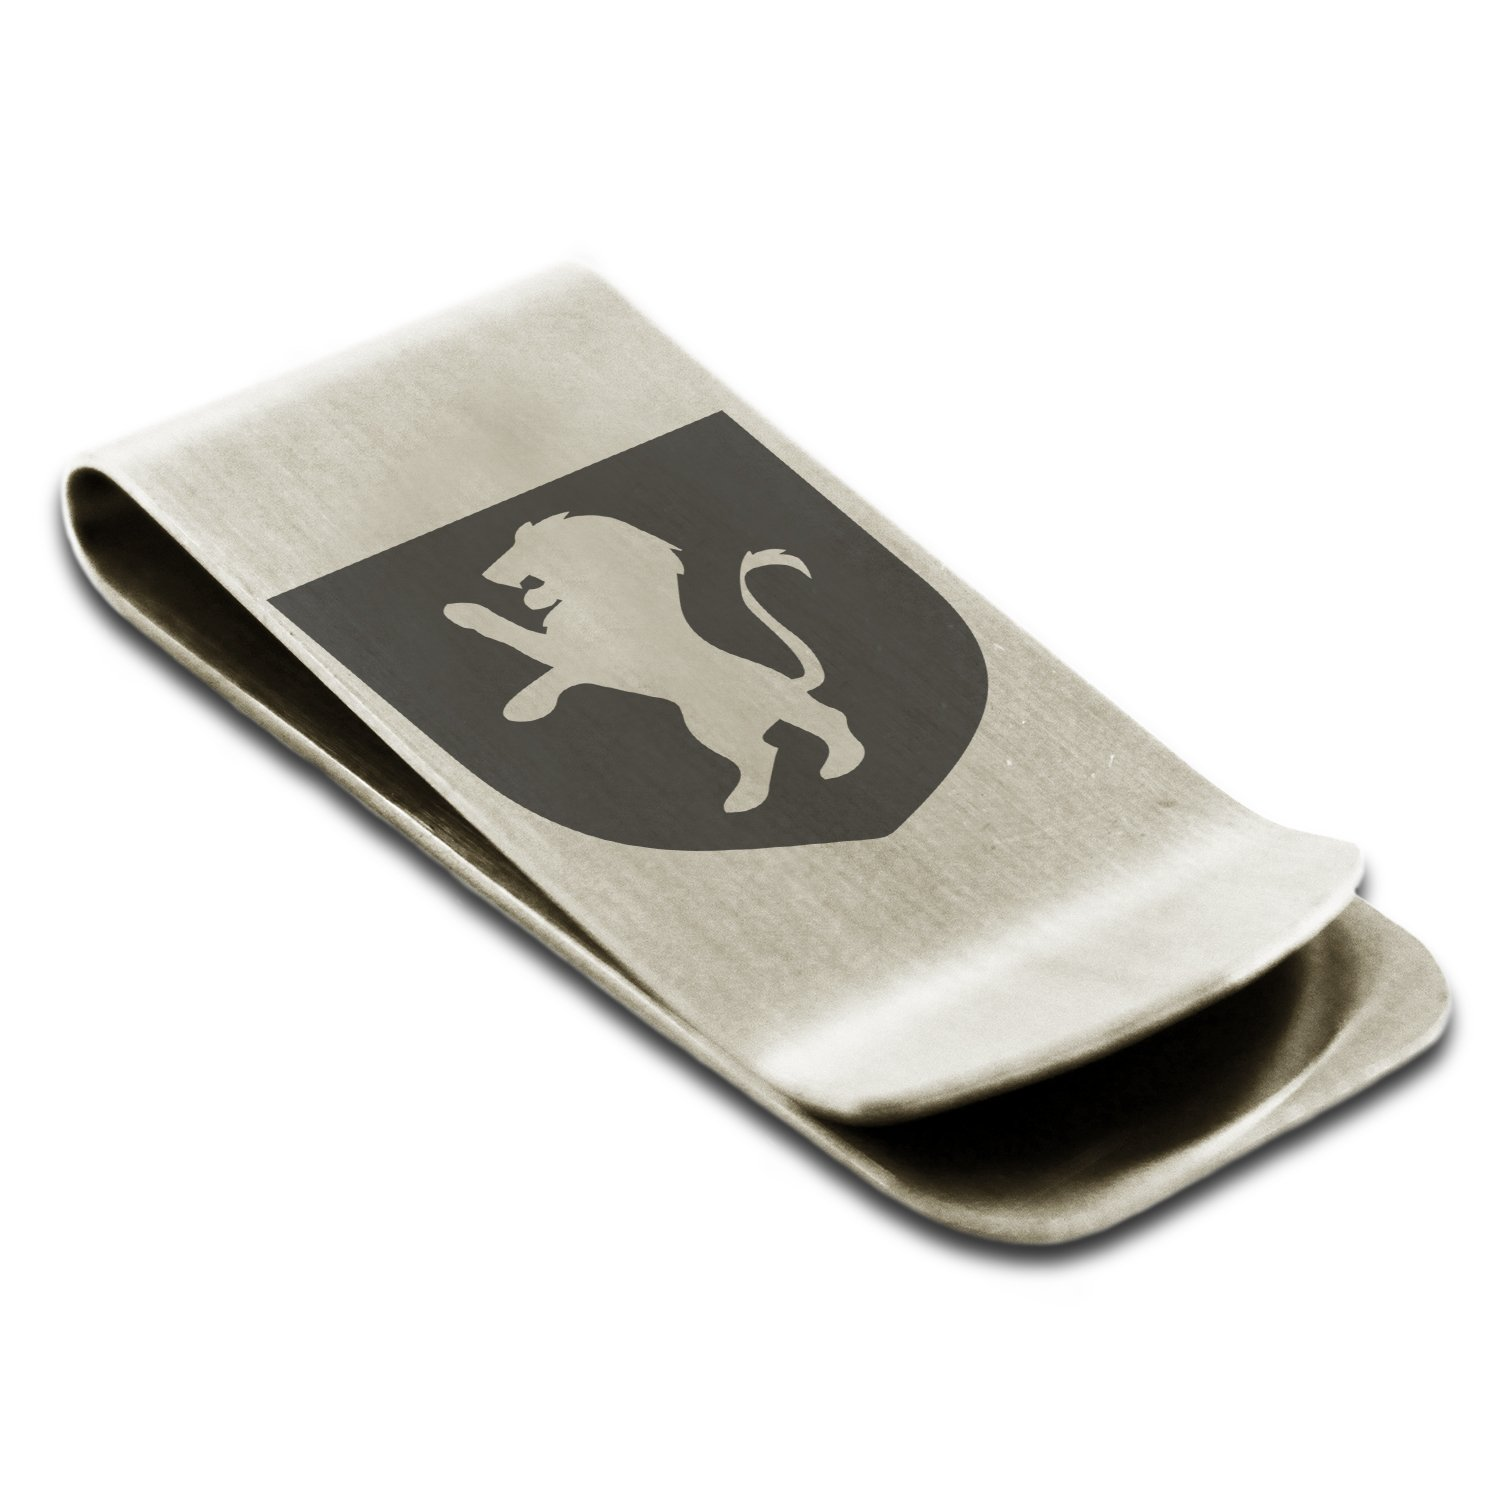 Stainless Steel Lion Courage Coat of Arms Shield Symbol Engraved Money Clip Credit Card Holder